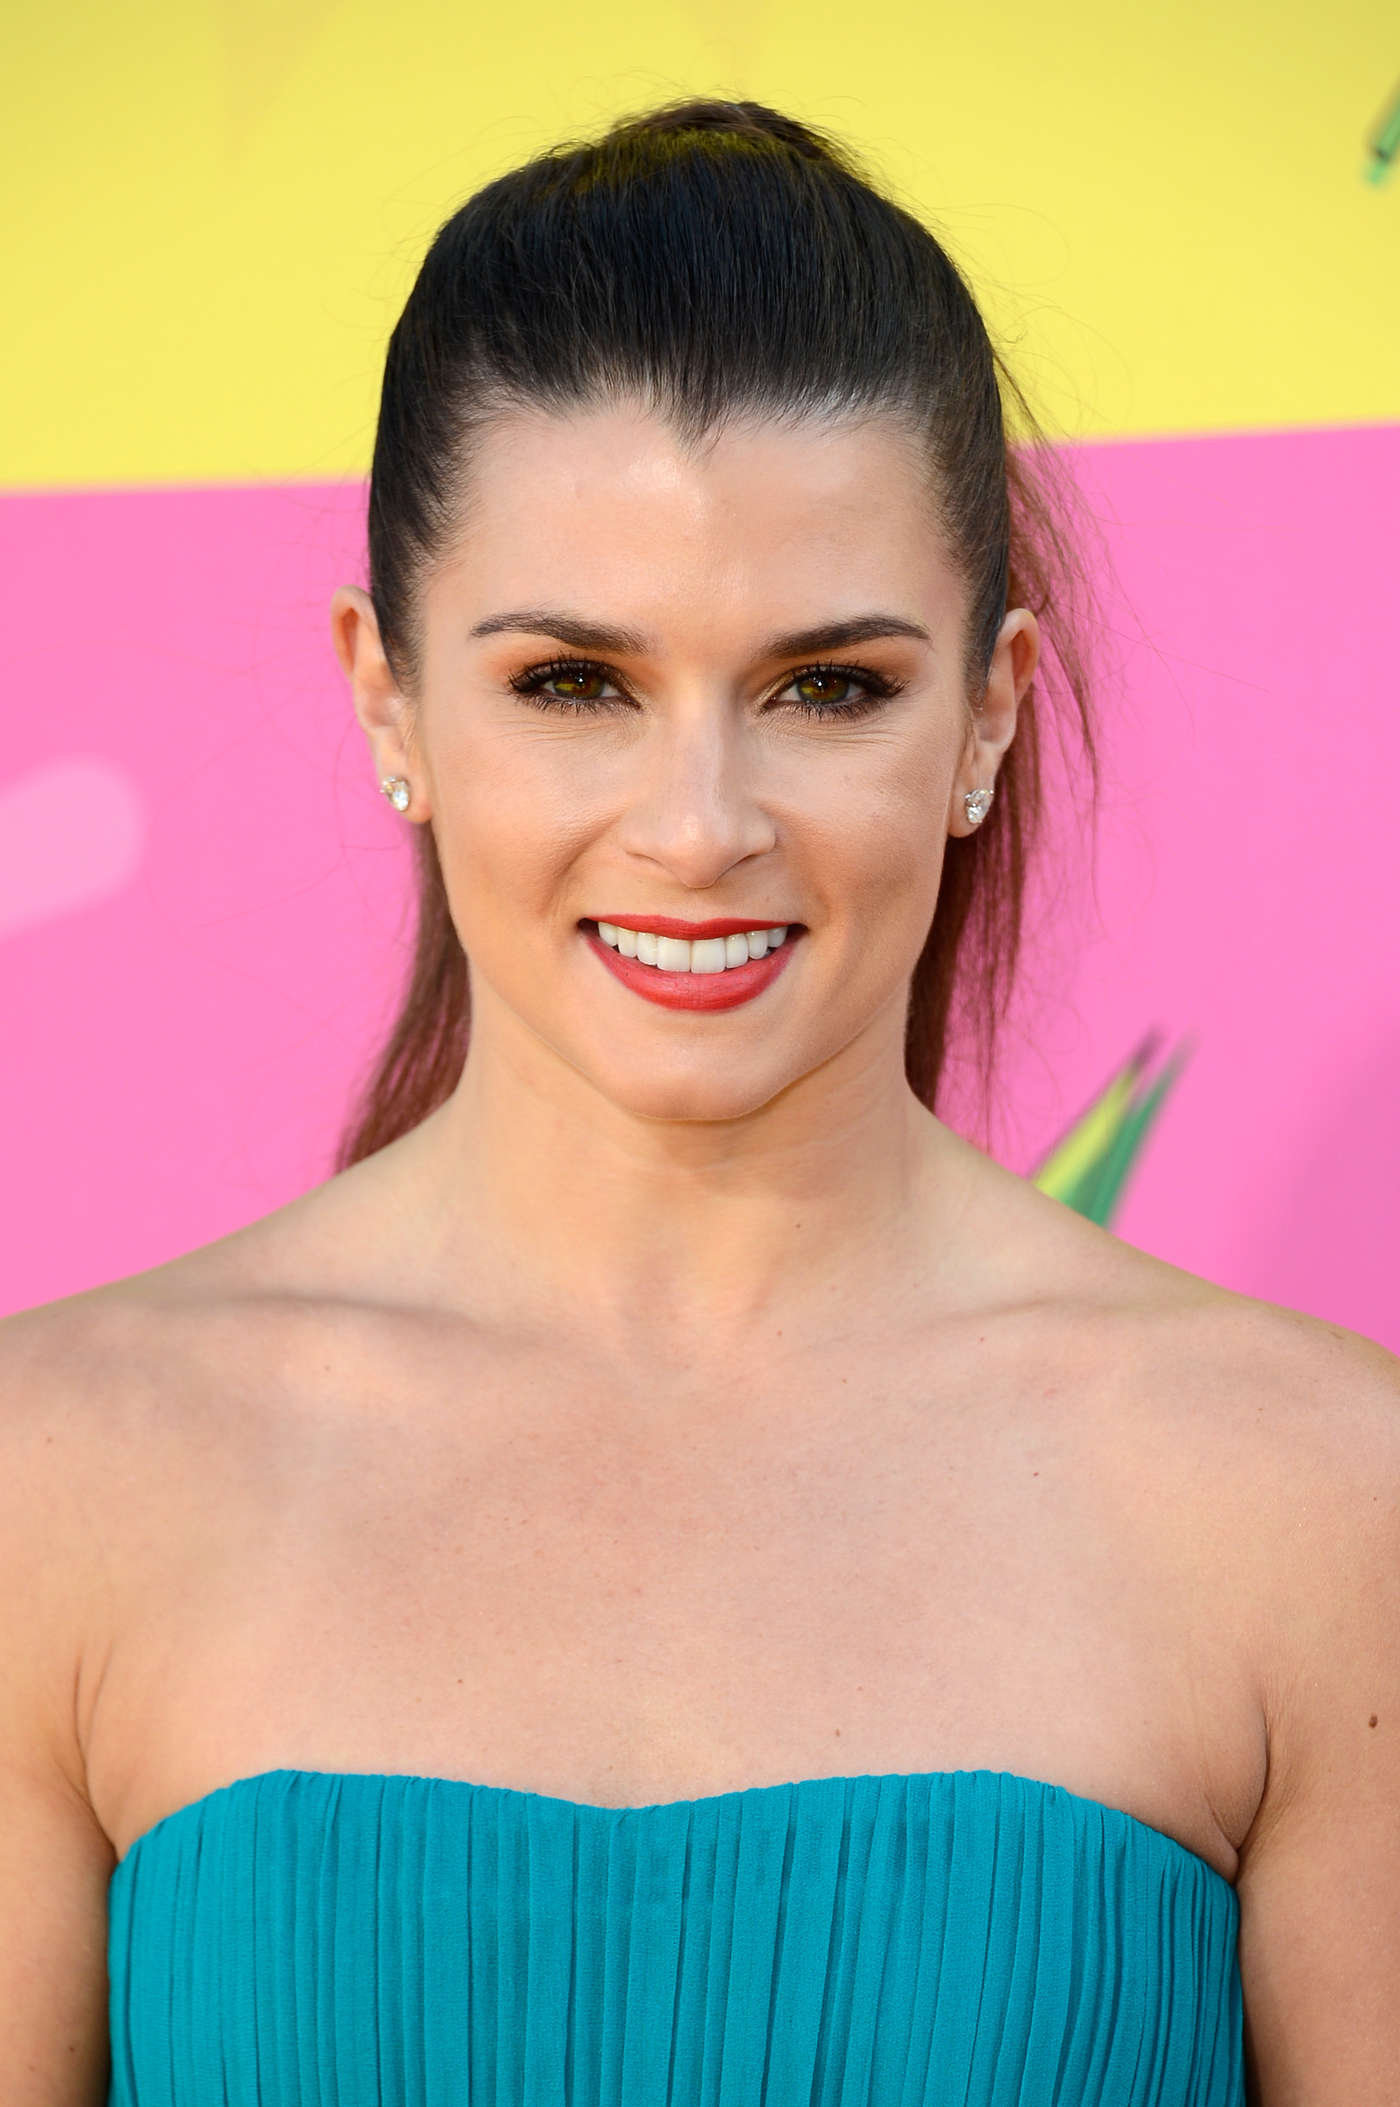 Danica Patrick Exposes the Truth Behind Curated Social